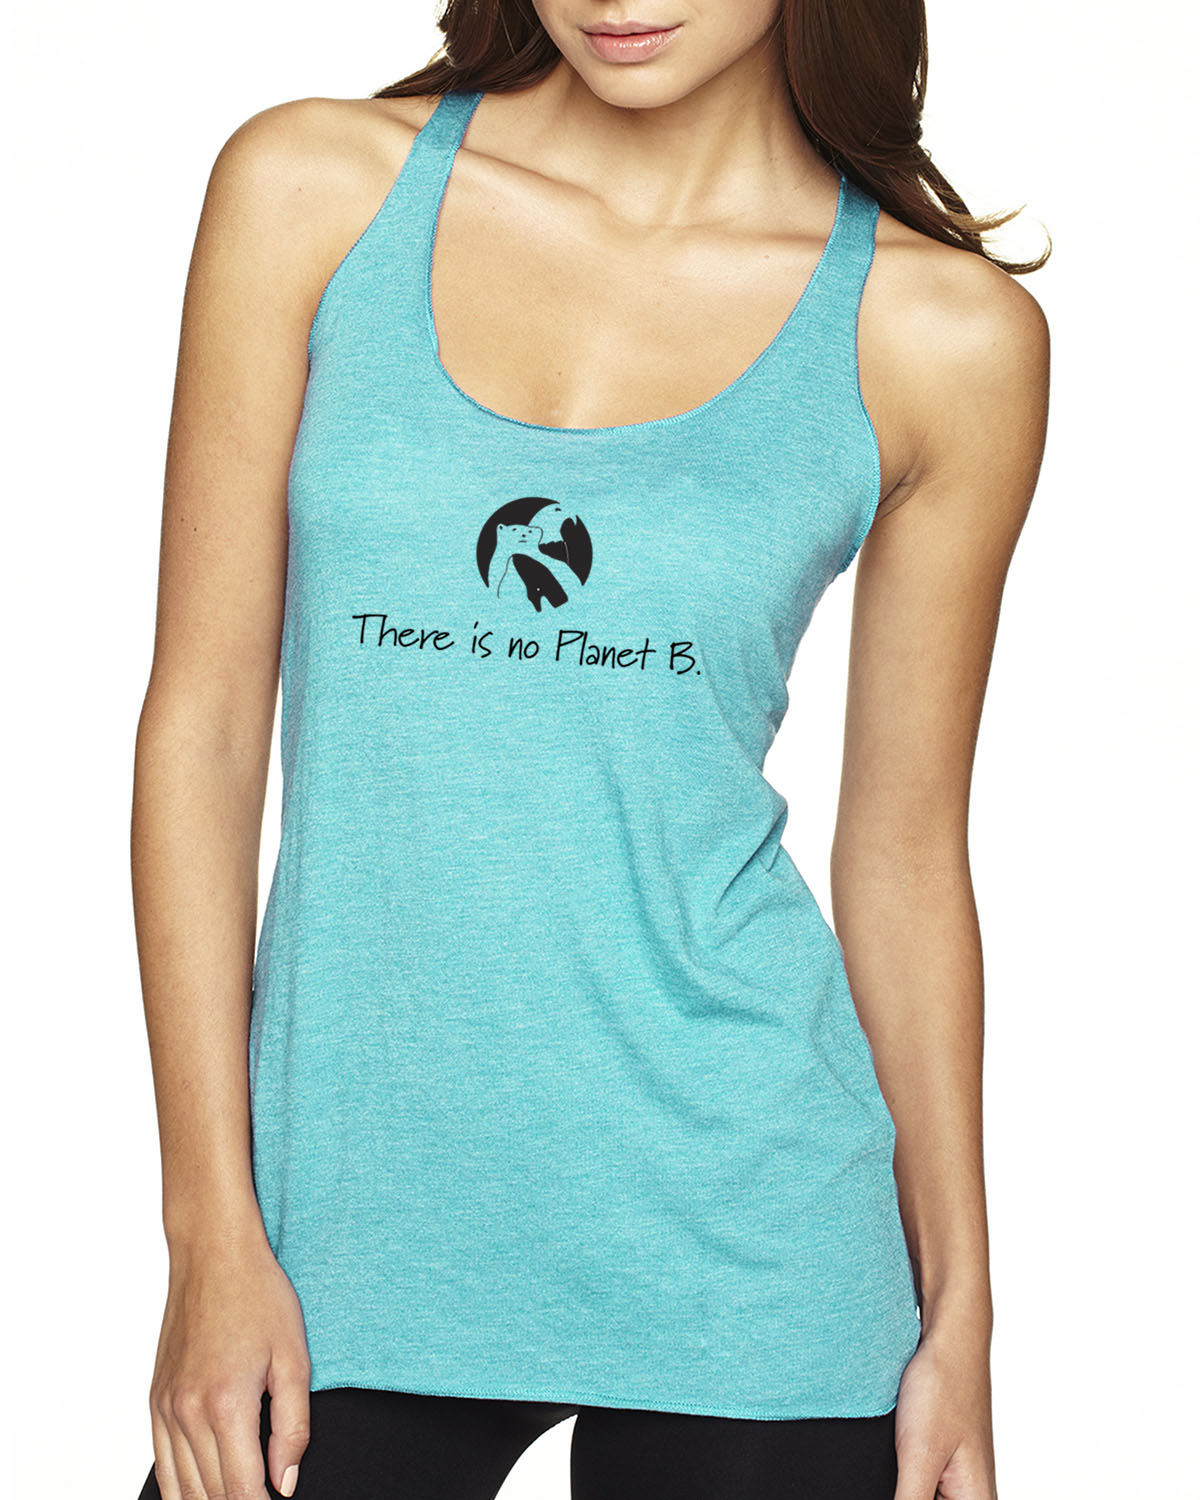 There is No Planet B tri-blend racer-back tank top (tahiti blue)